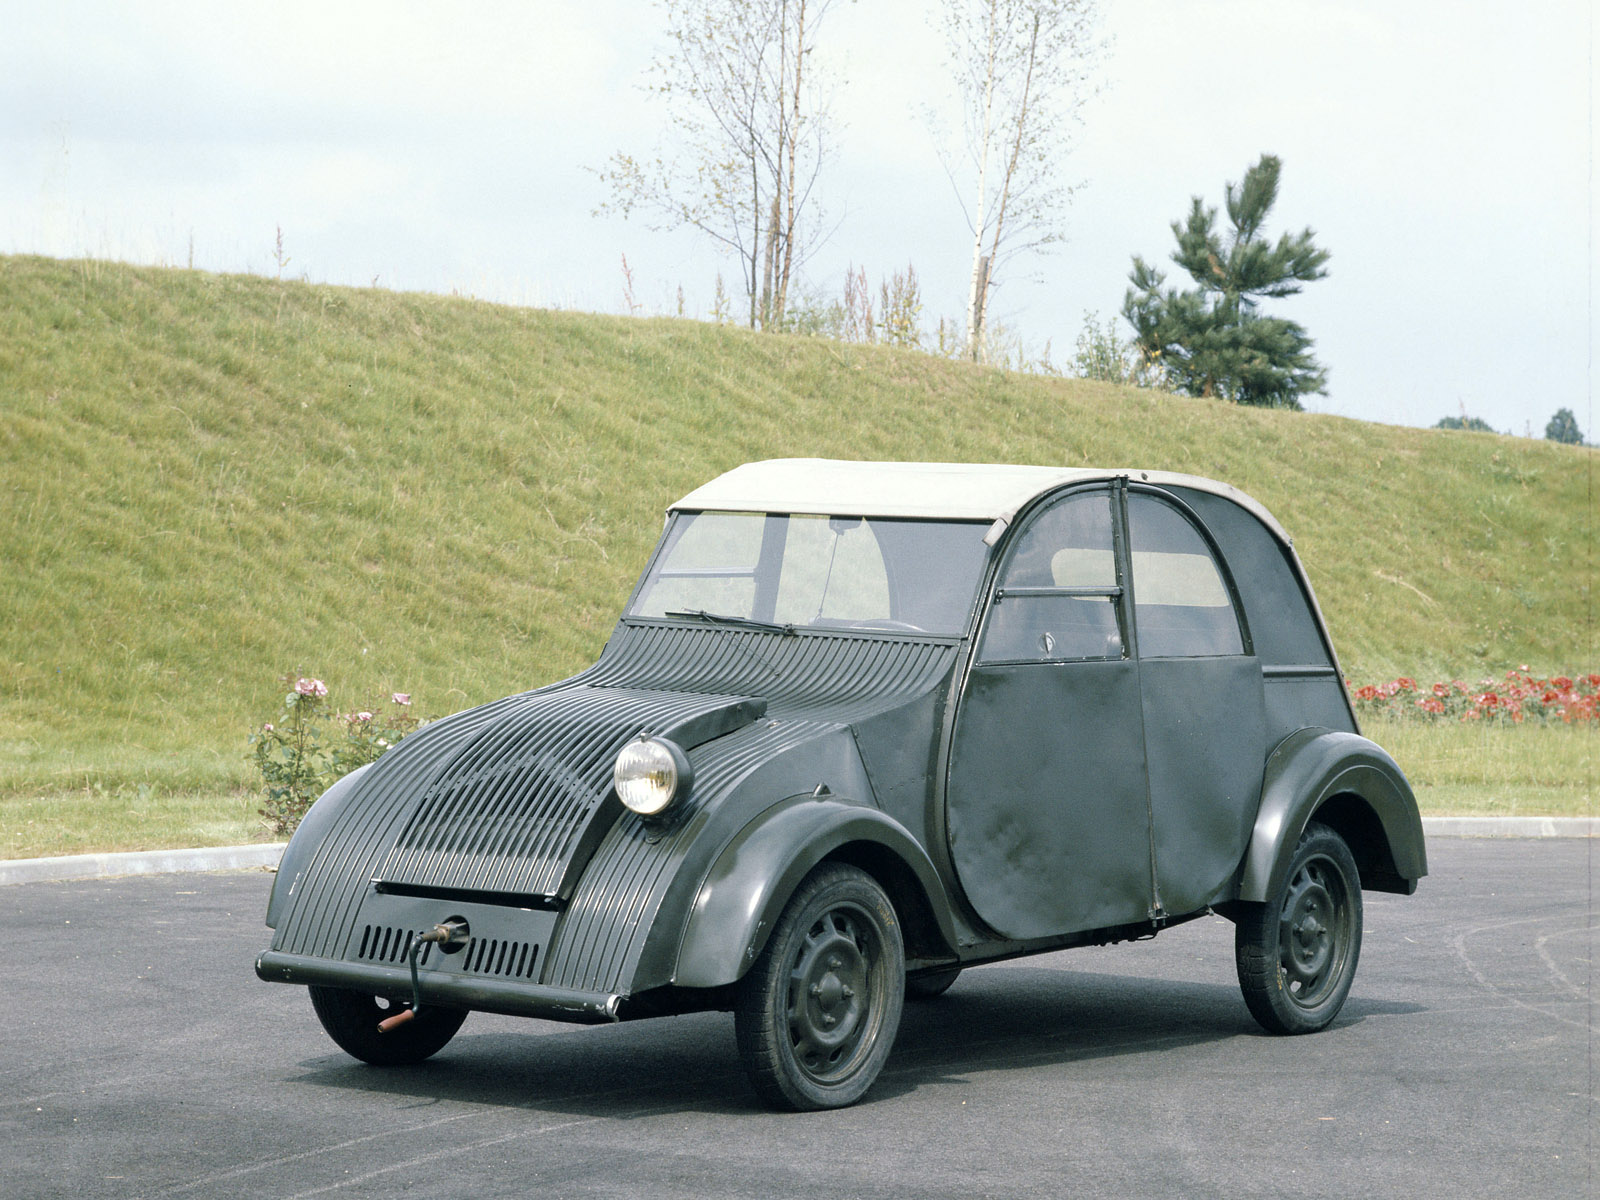 citroen 2cv picture 52120 citroen photo gallery. Black Bedroom Furniture Sets. Home Design Ideas